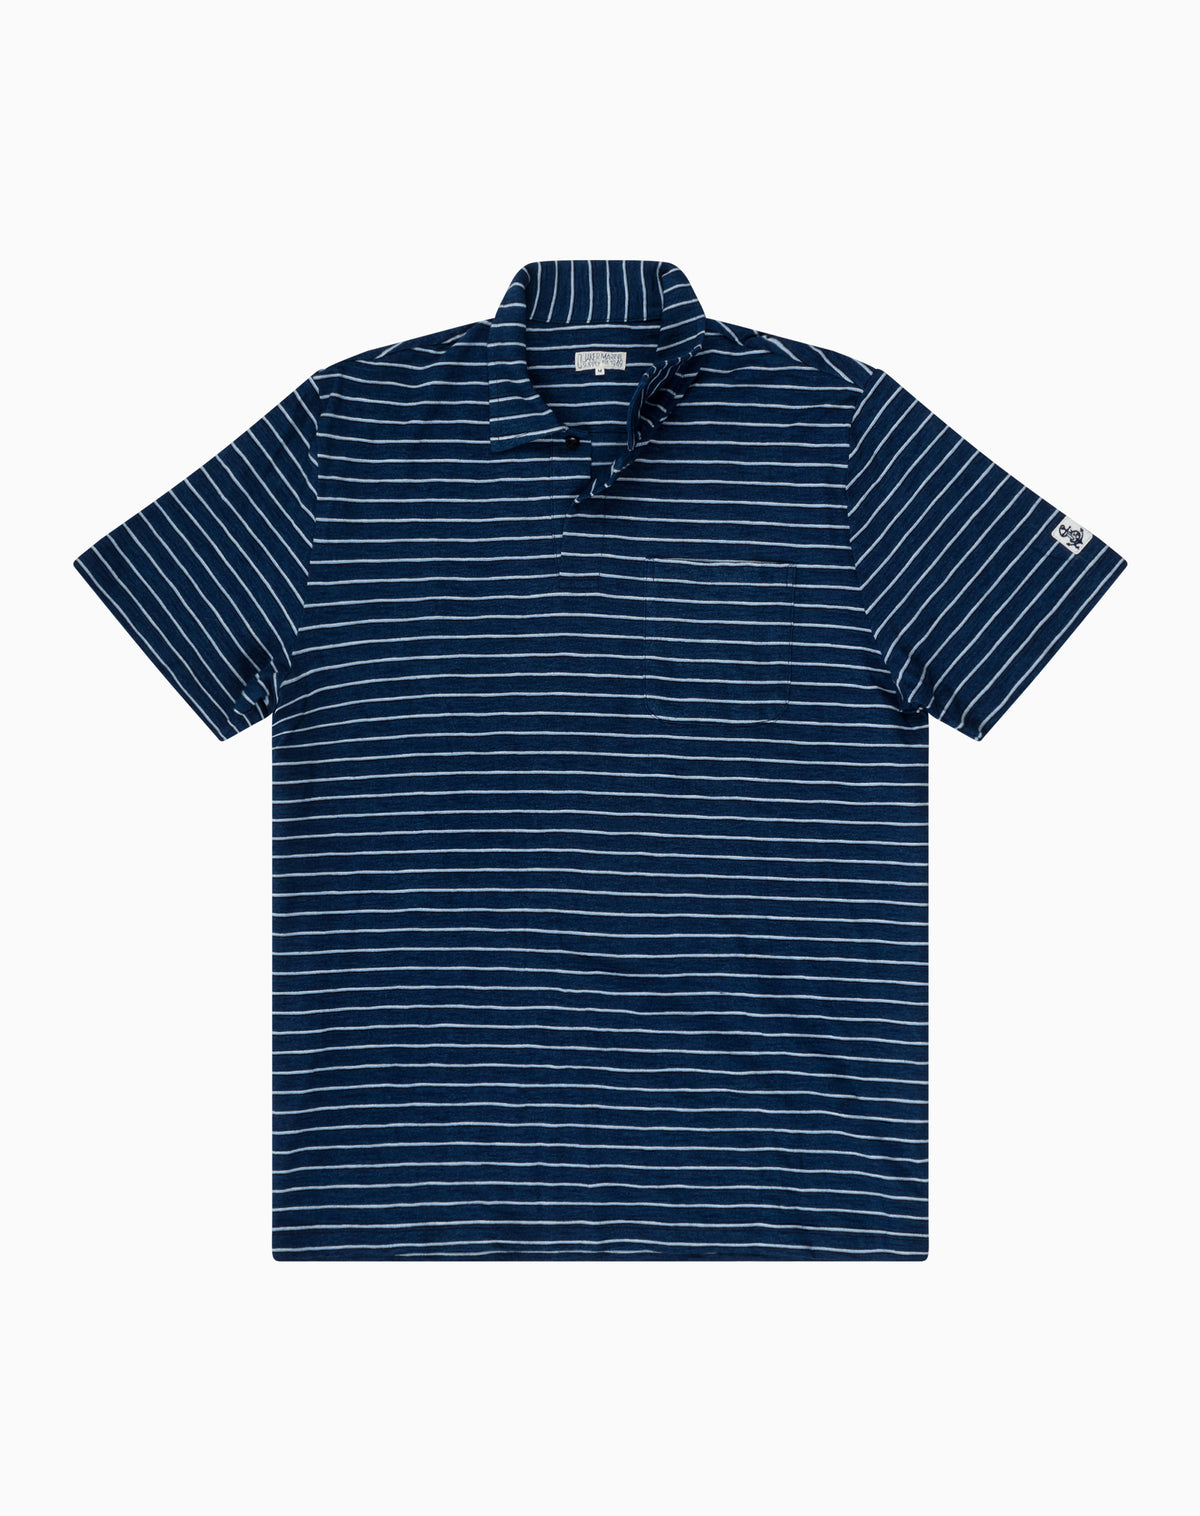 Polo in Dark Wash Blue Stripe